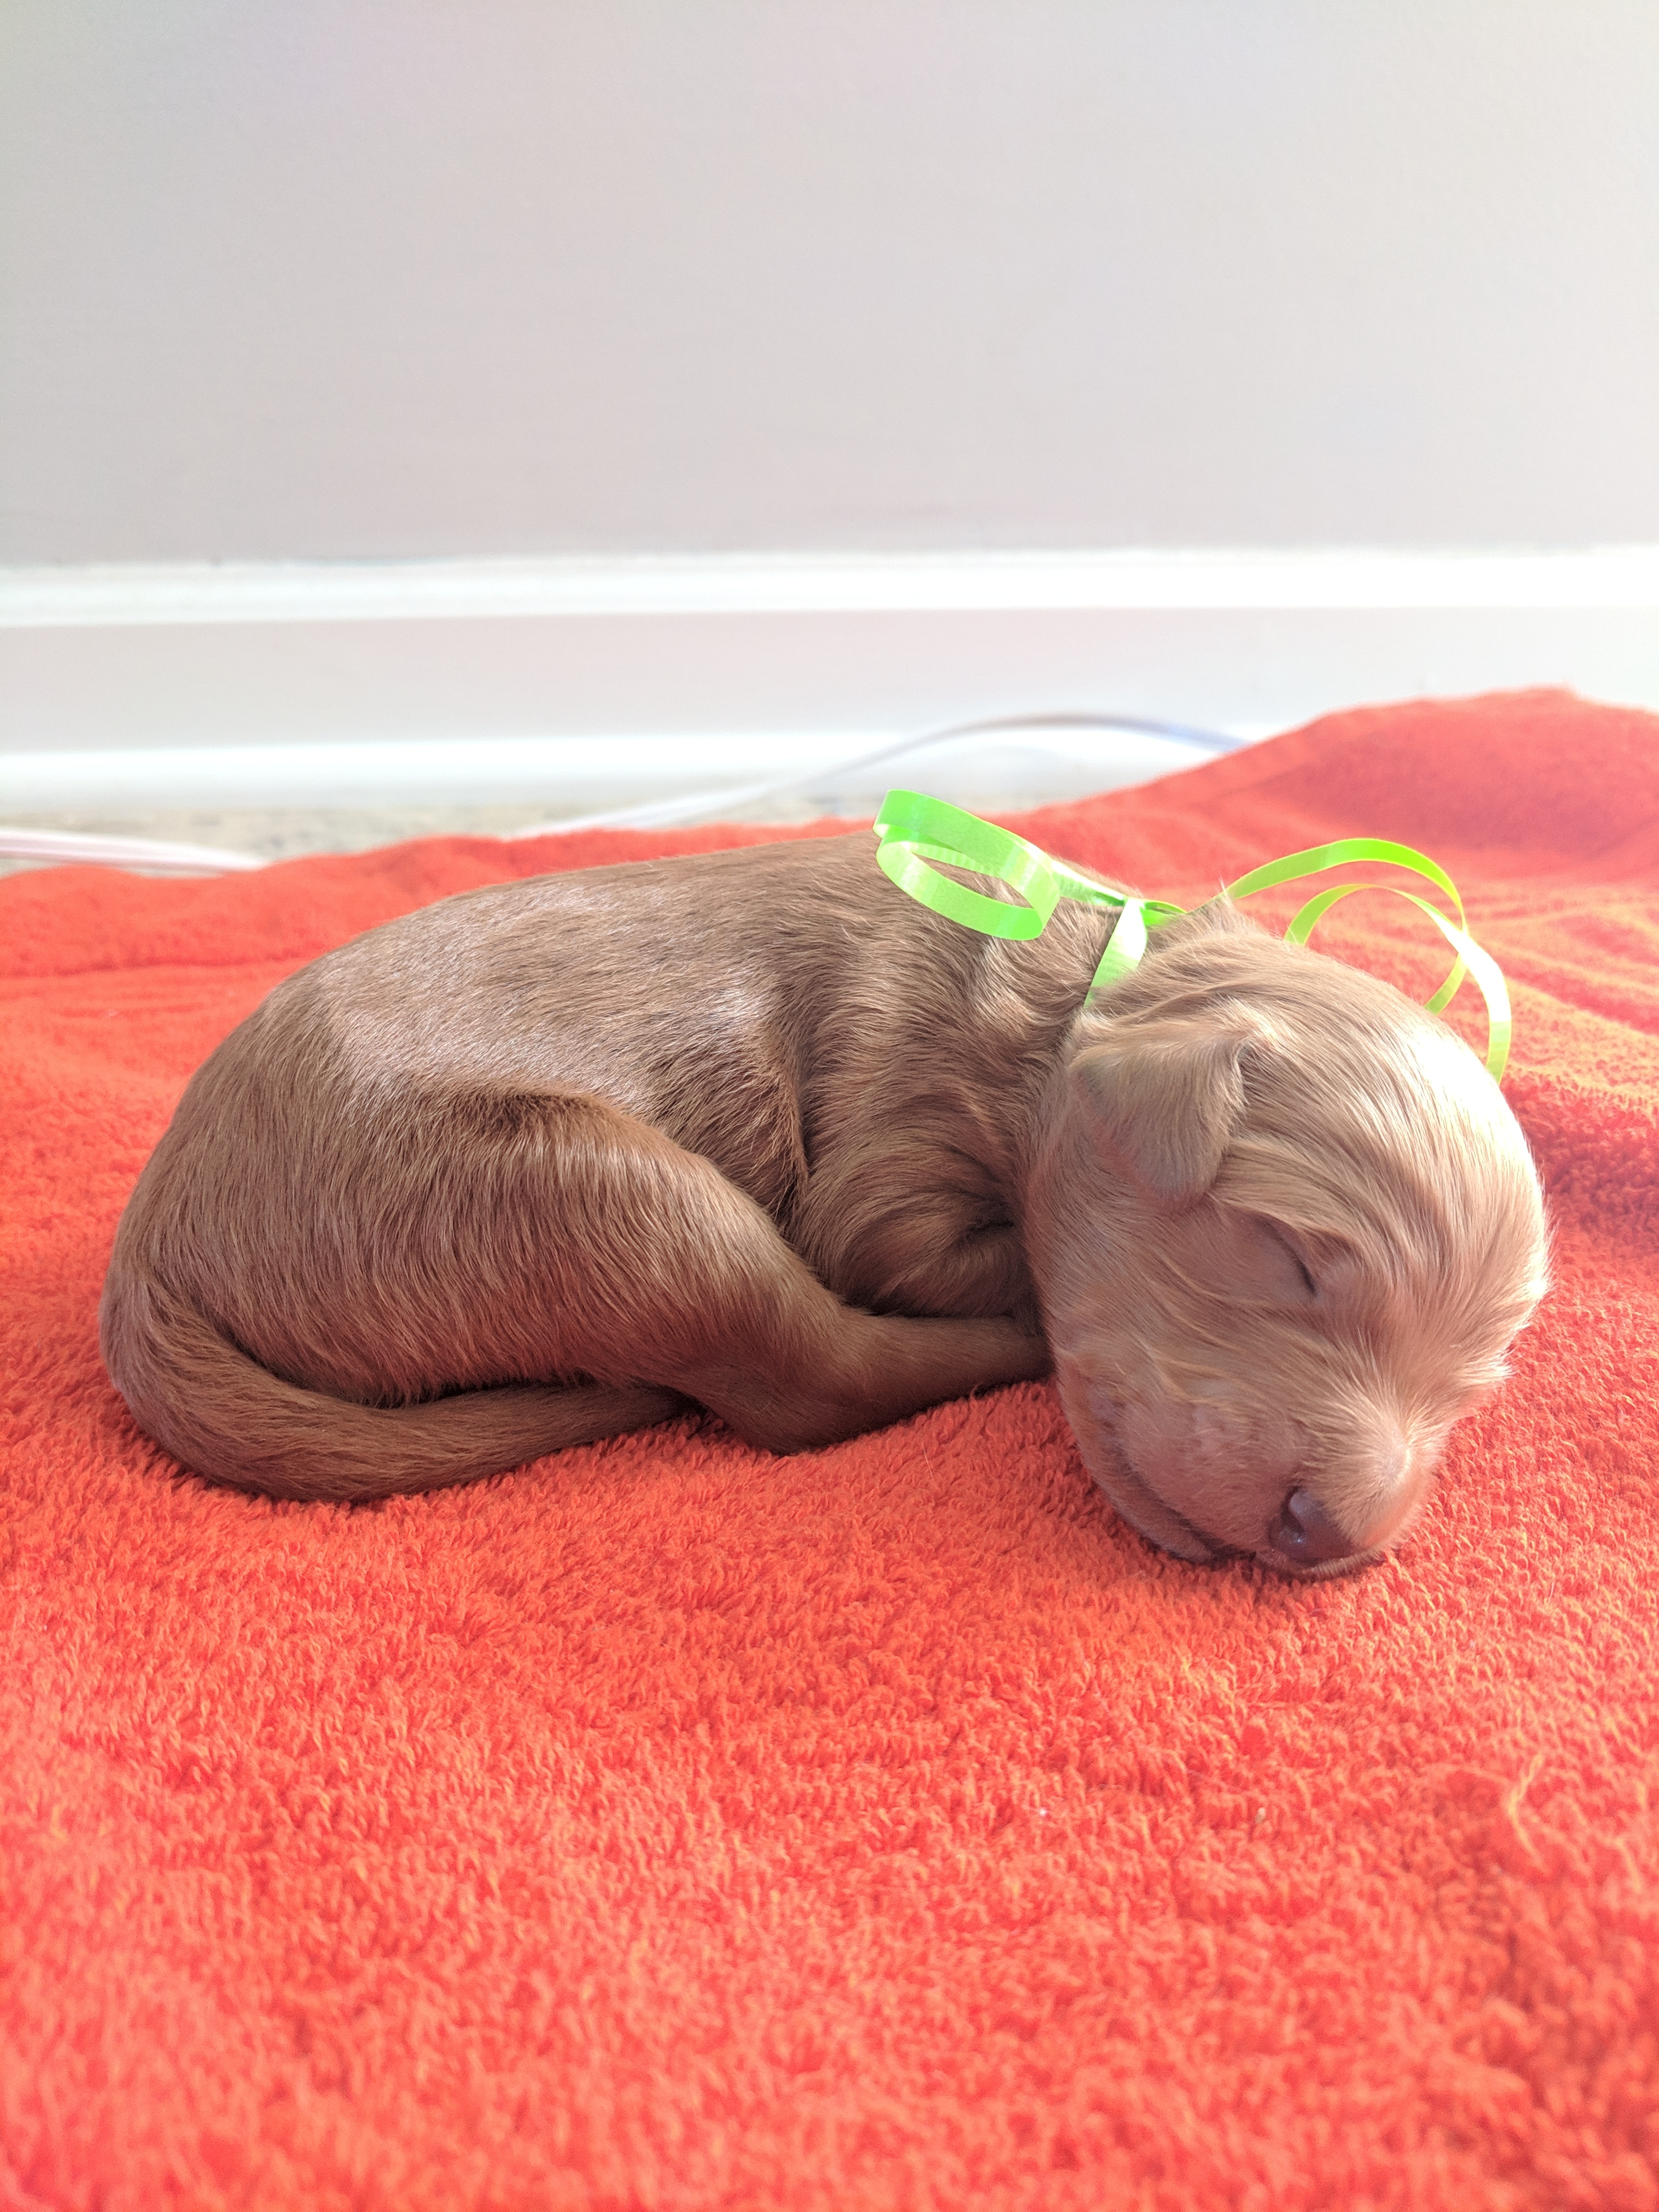 Boston A Male Akc Goldendoodle Puppy For Sale Tennessee Vip Puppies